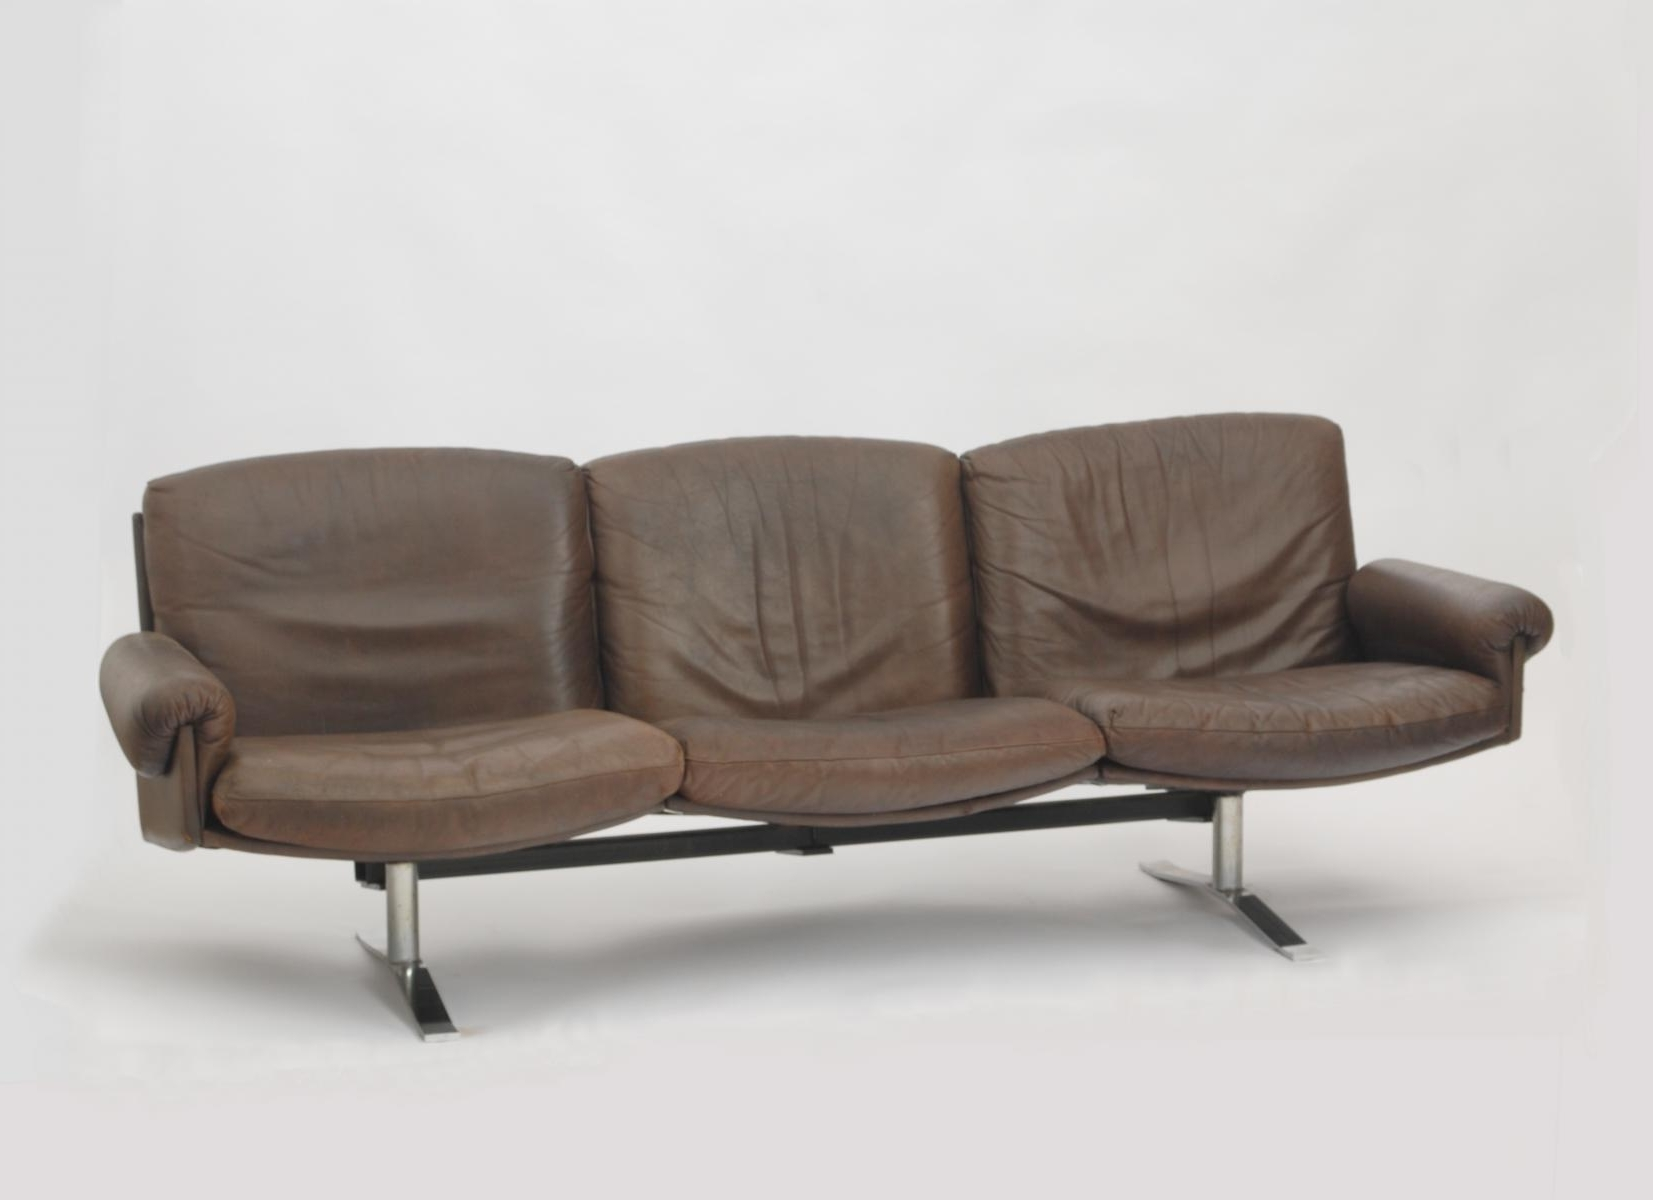 2017 Mid Century German 3 Seater Leather Sofa For Sale At Pamono With 3 Seater Leather Sofas (View 4 of 15)